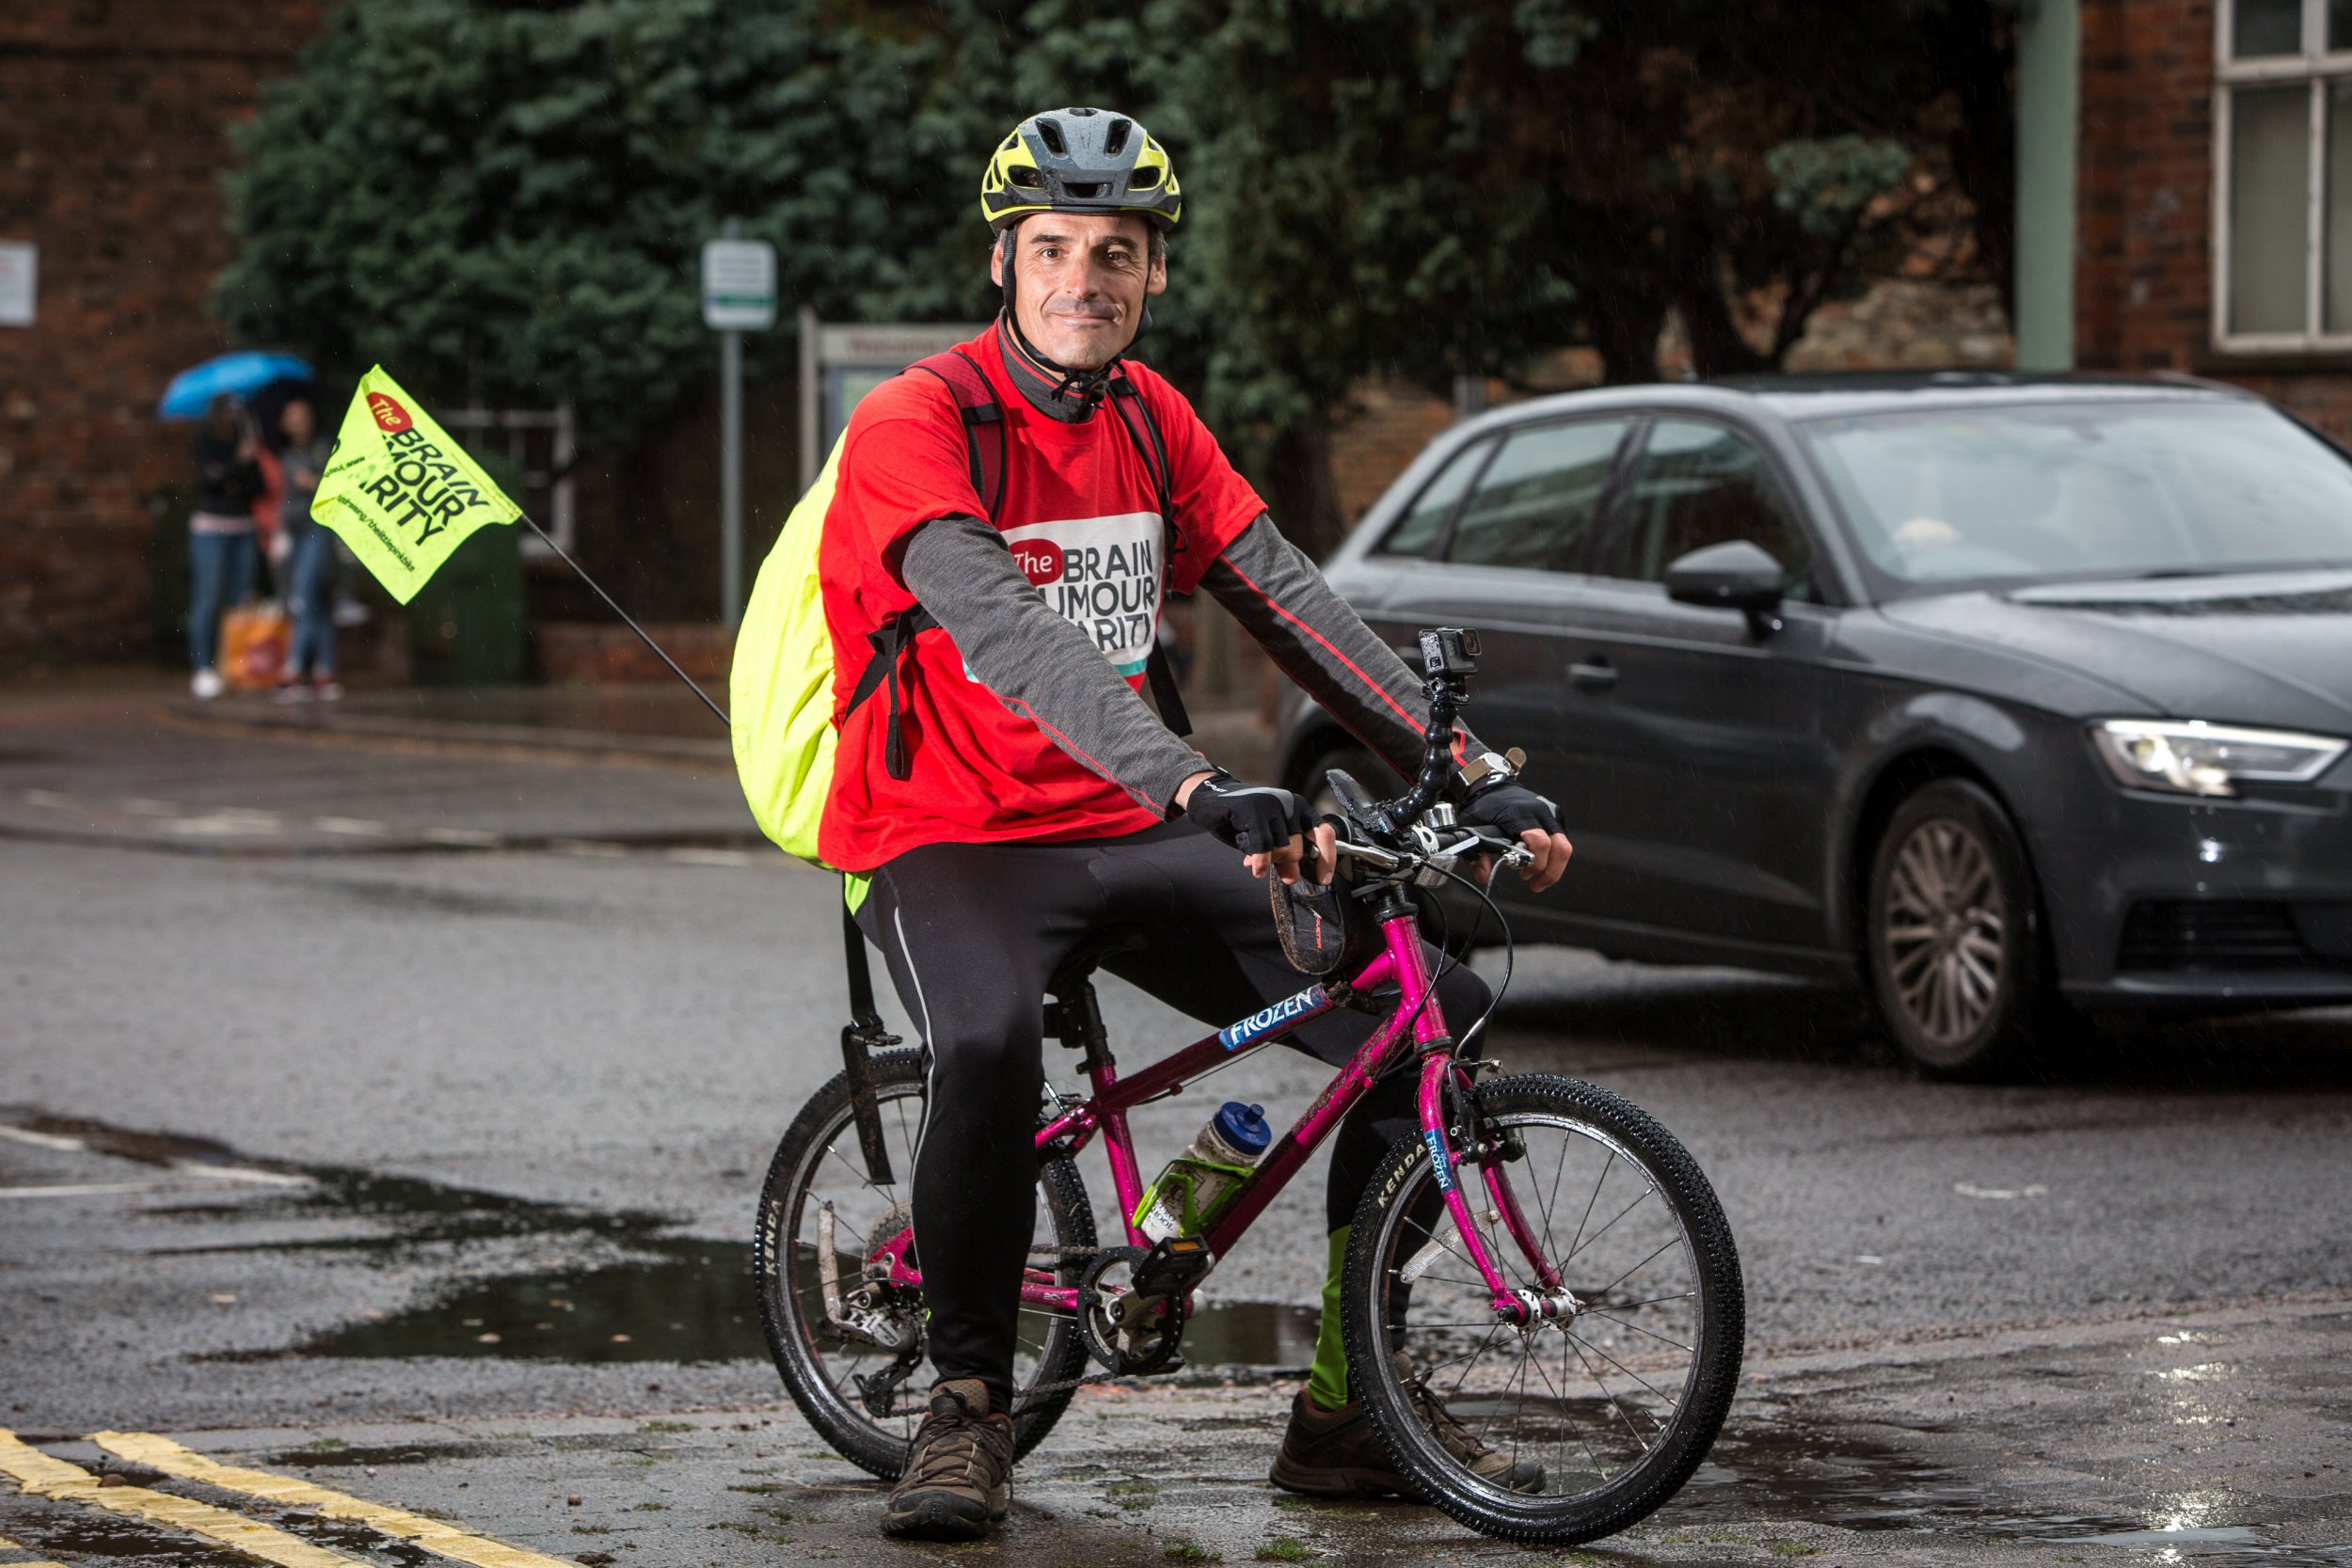 Peter Williams who lost his seven year old daughter Ellie to cancer rides her tiny pink bike on a 200 mile route from Bristol to Land???s End. See SWNS story SWBIKE; A devoted dad is riding 200 miles on his late daughter's tiny bike to raise money for charity. Peter Williams has set off on his challenge in memory of seven-year-old Ellie who died from a brain tumour three years ago. He will now spend around a week pedaling the undersized bike from Bristol to Land's End in support of the Brain Tumour Charity. Peter, from Penzance, Cornwall, who is 6ft, left from the Bristol Children's Hospital.